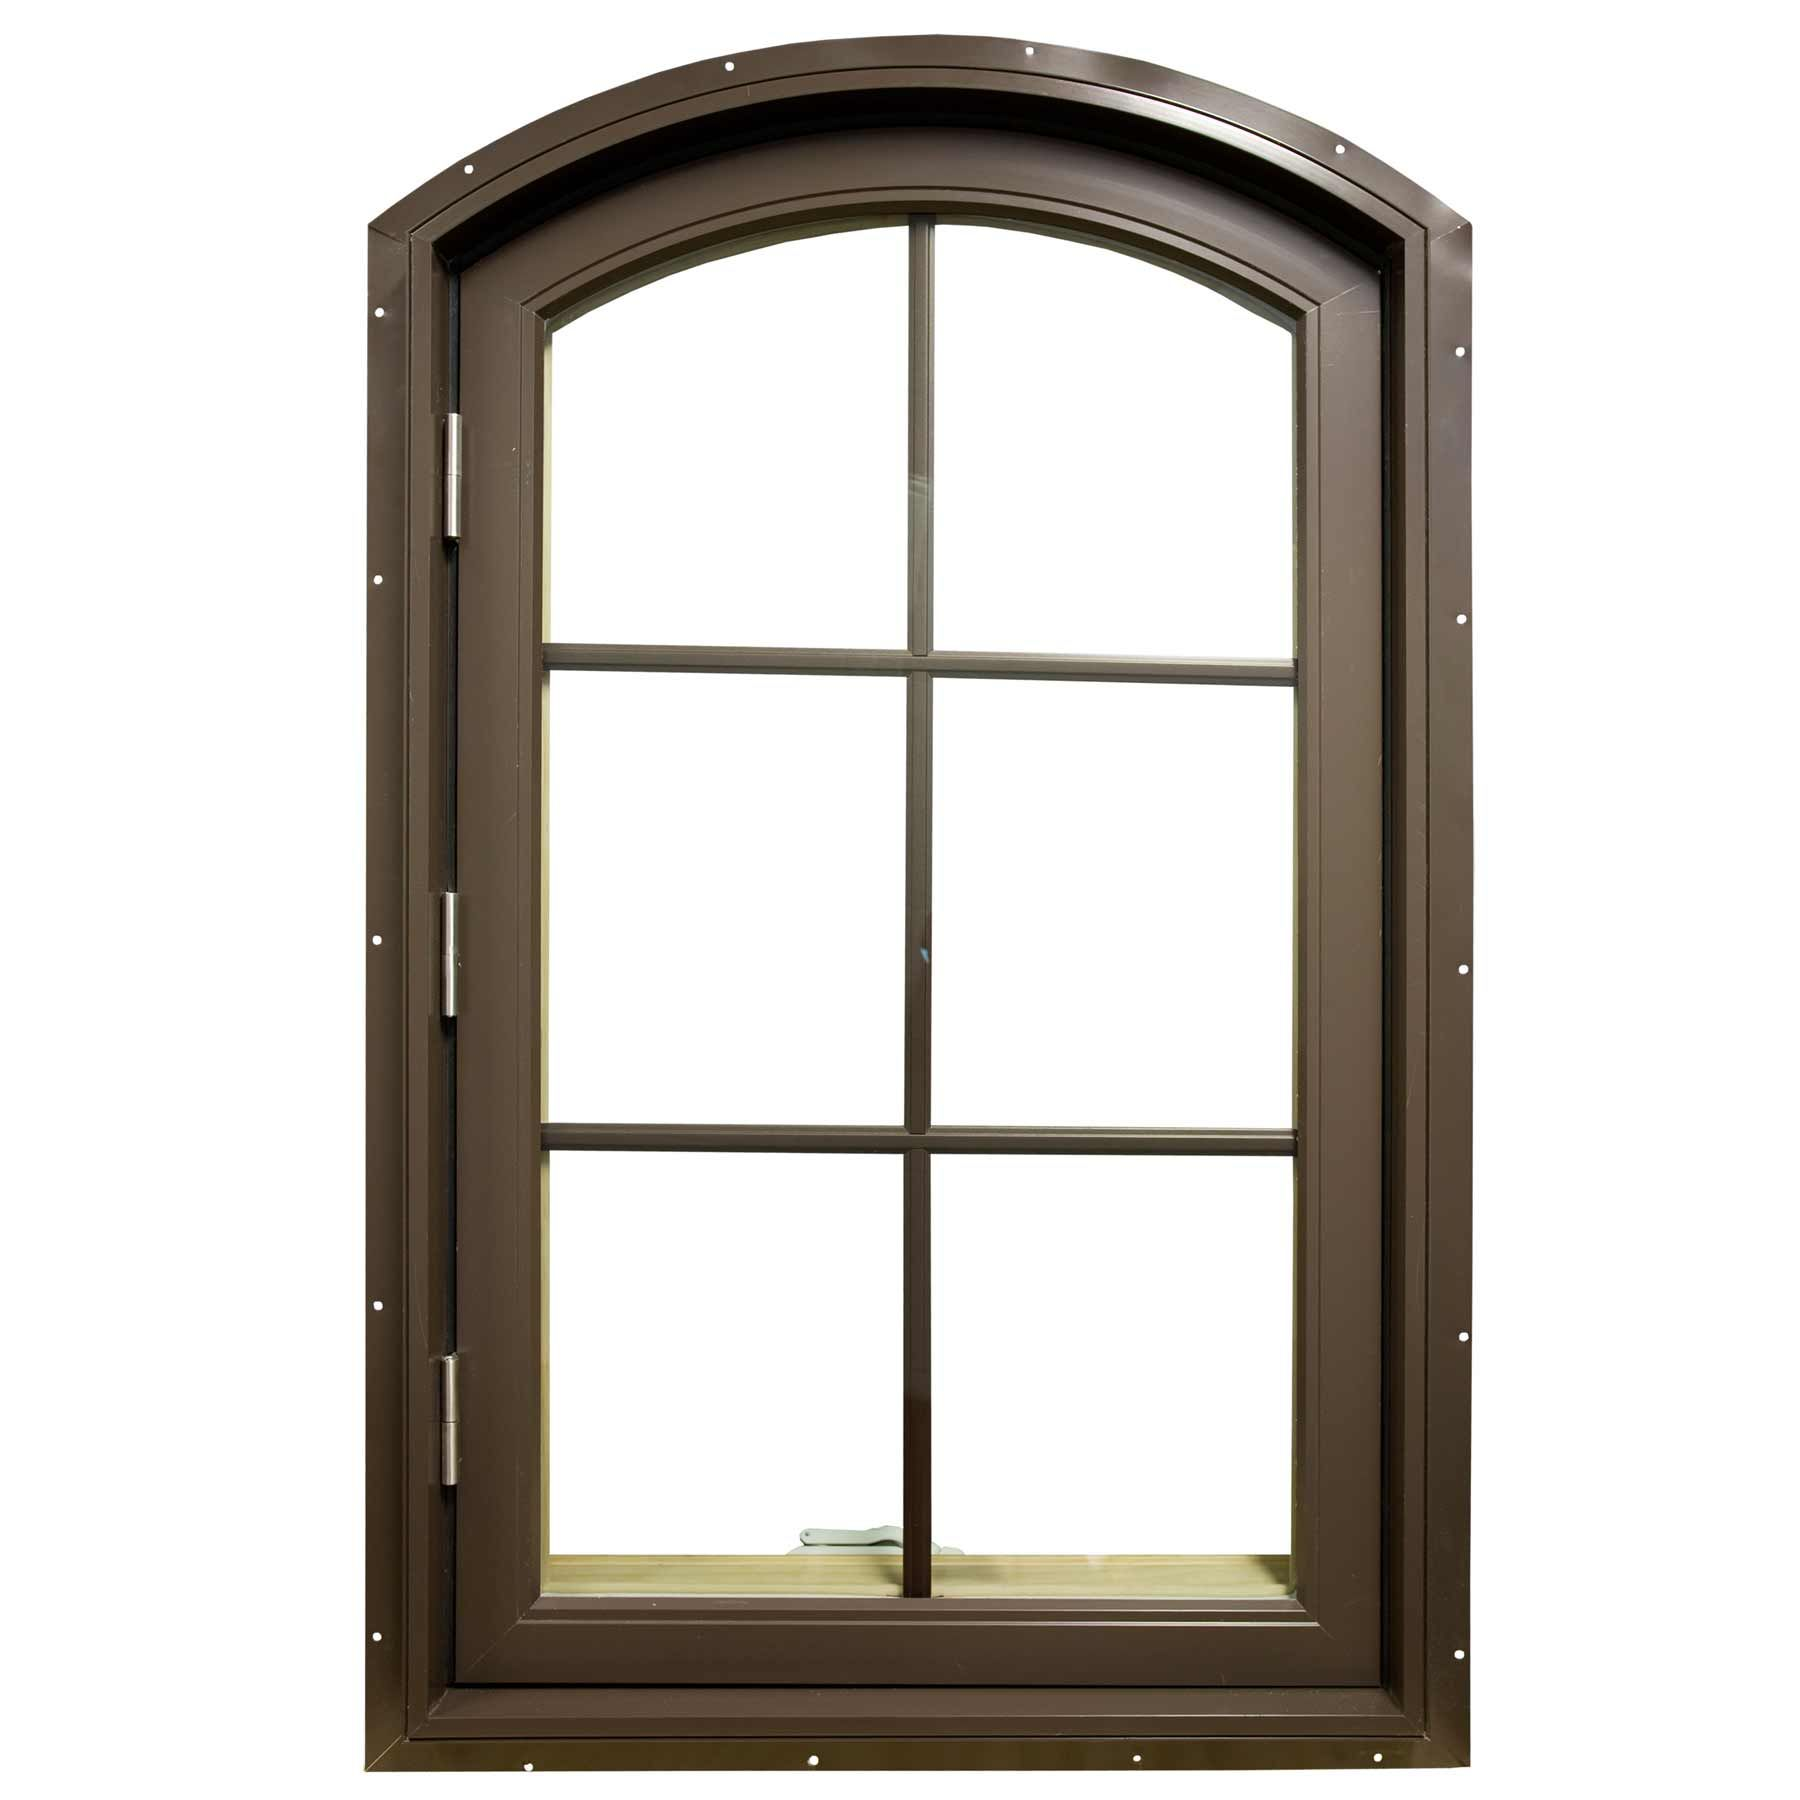 Aluminum casement windows for home feel the home for Glass windows and doors